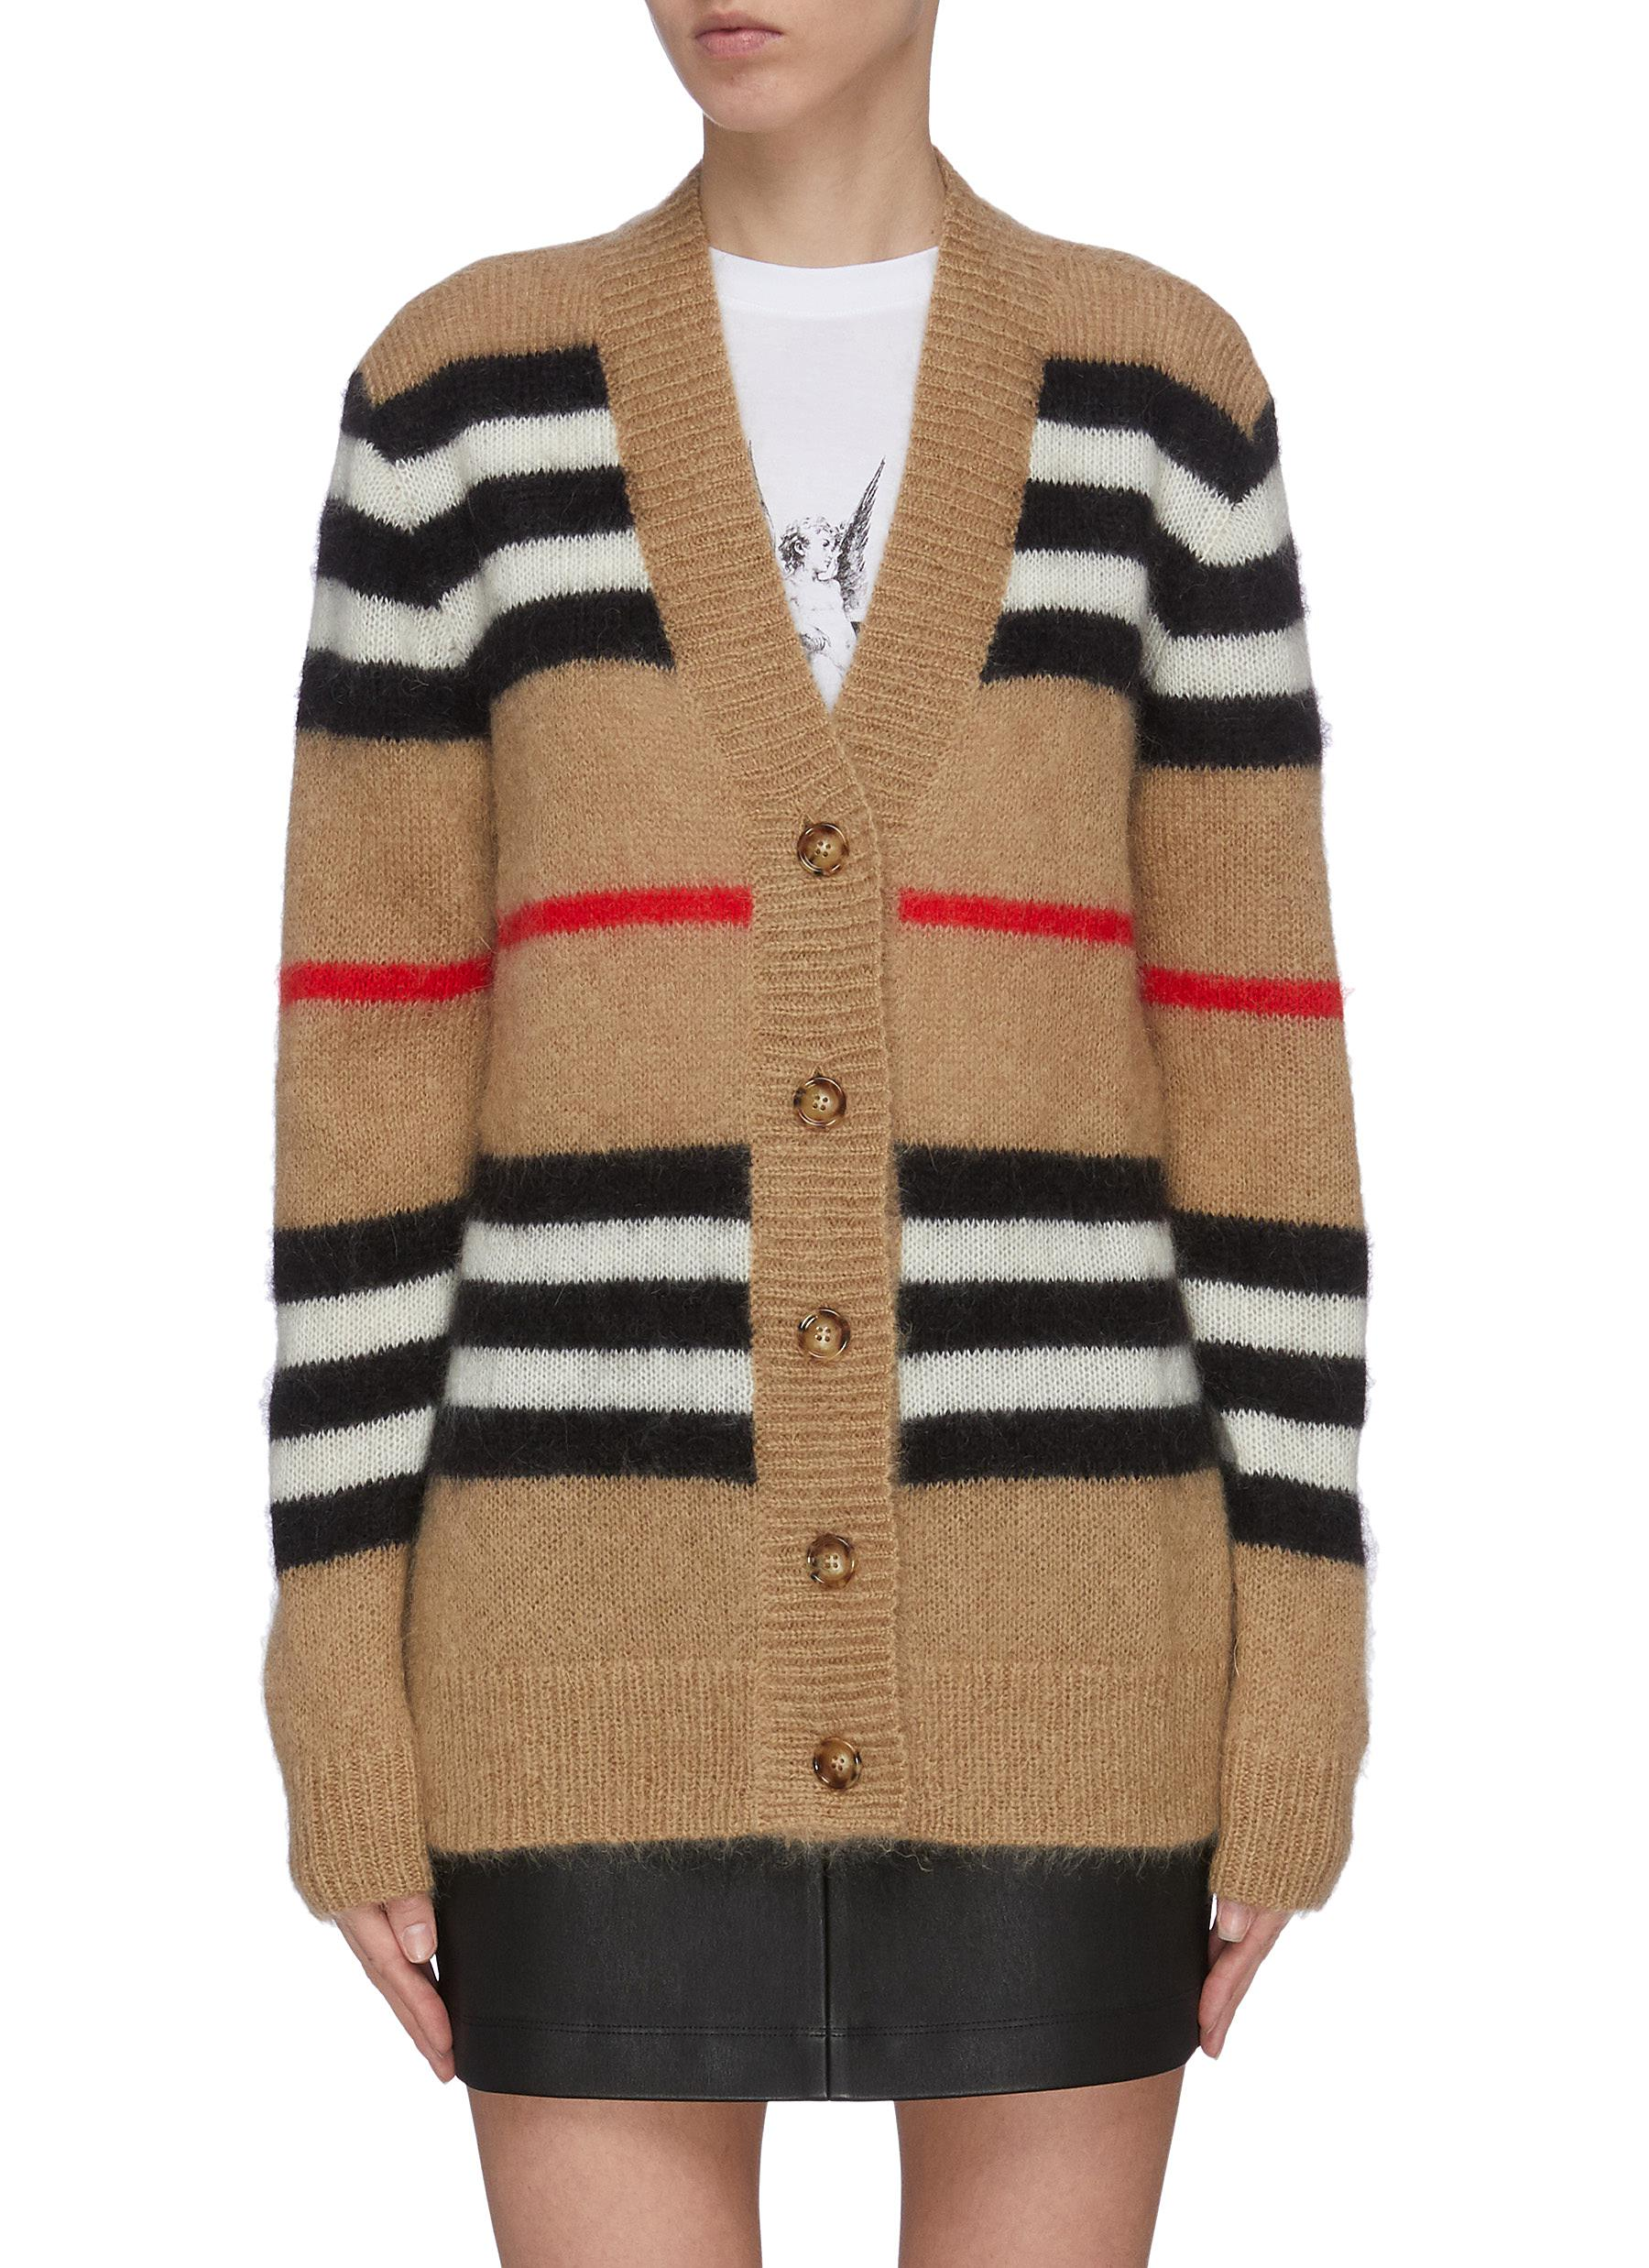 Buy Burberry Knitwear 'Archive' stripe knit cardian